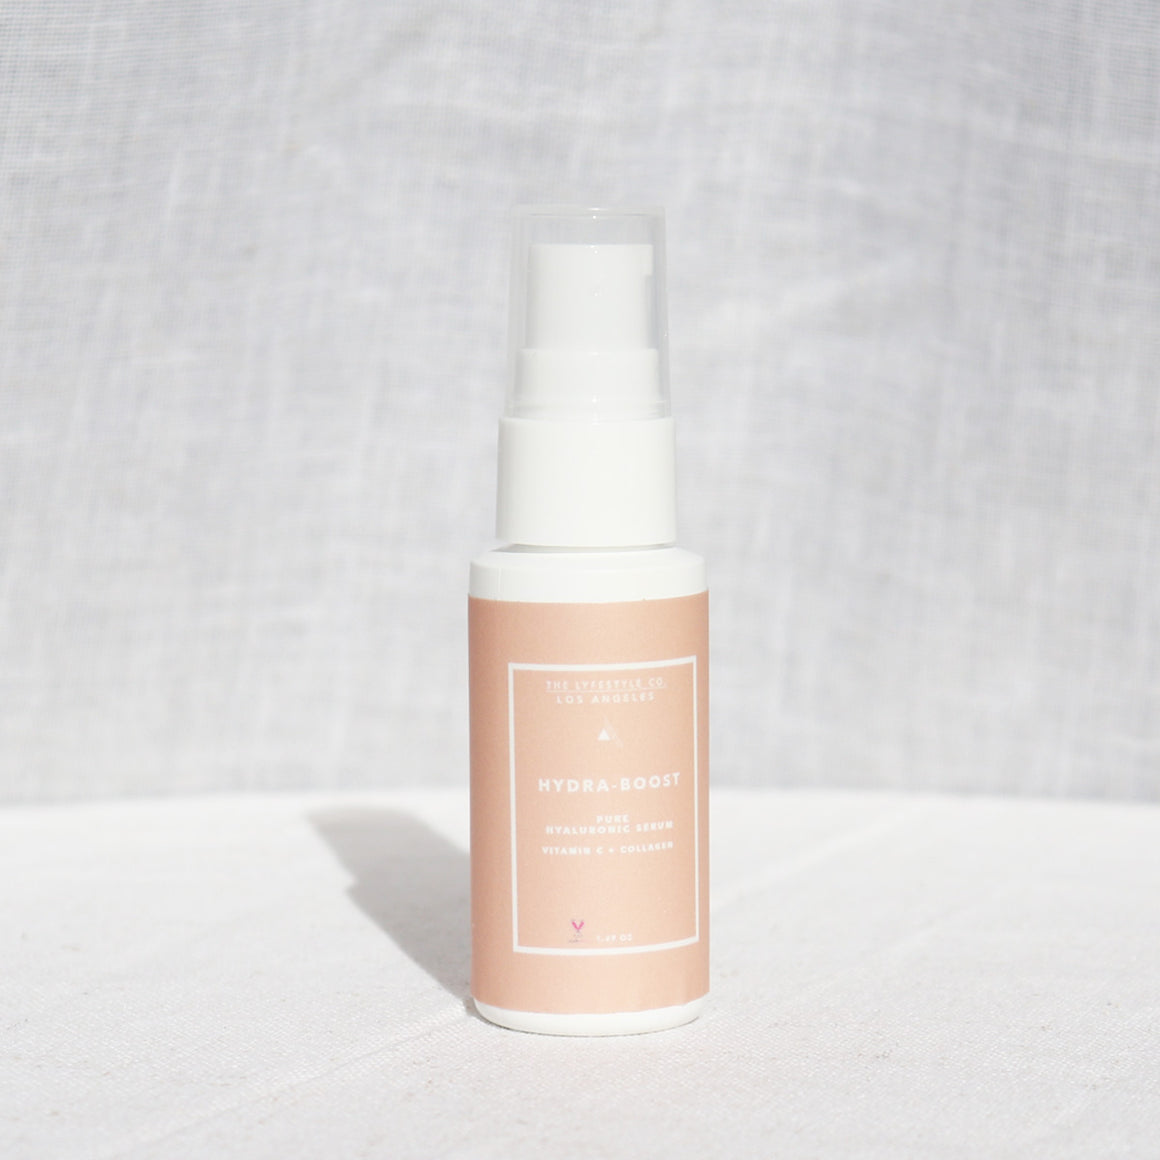 HYDRA-BOOST Hyaluronic Serum with Collagen + Vitamin C